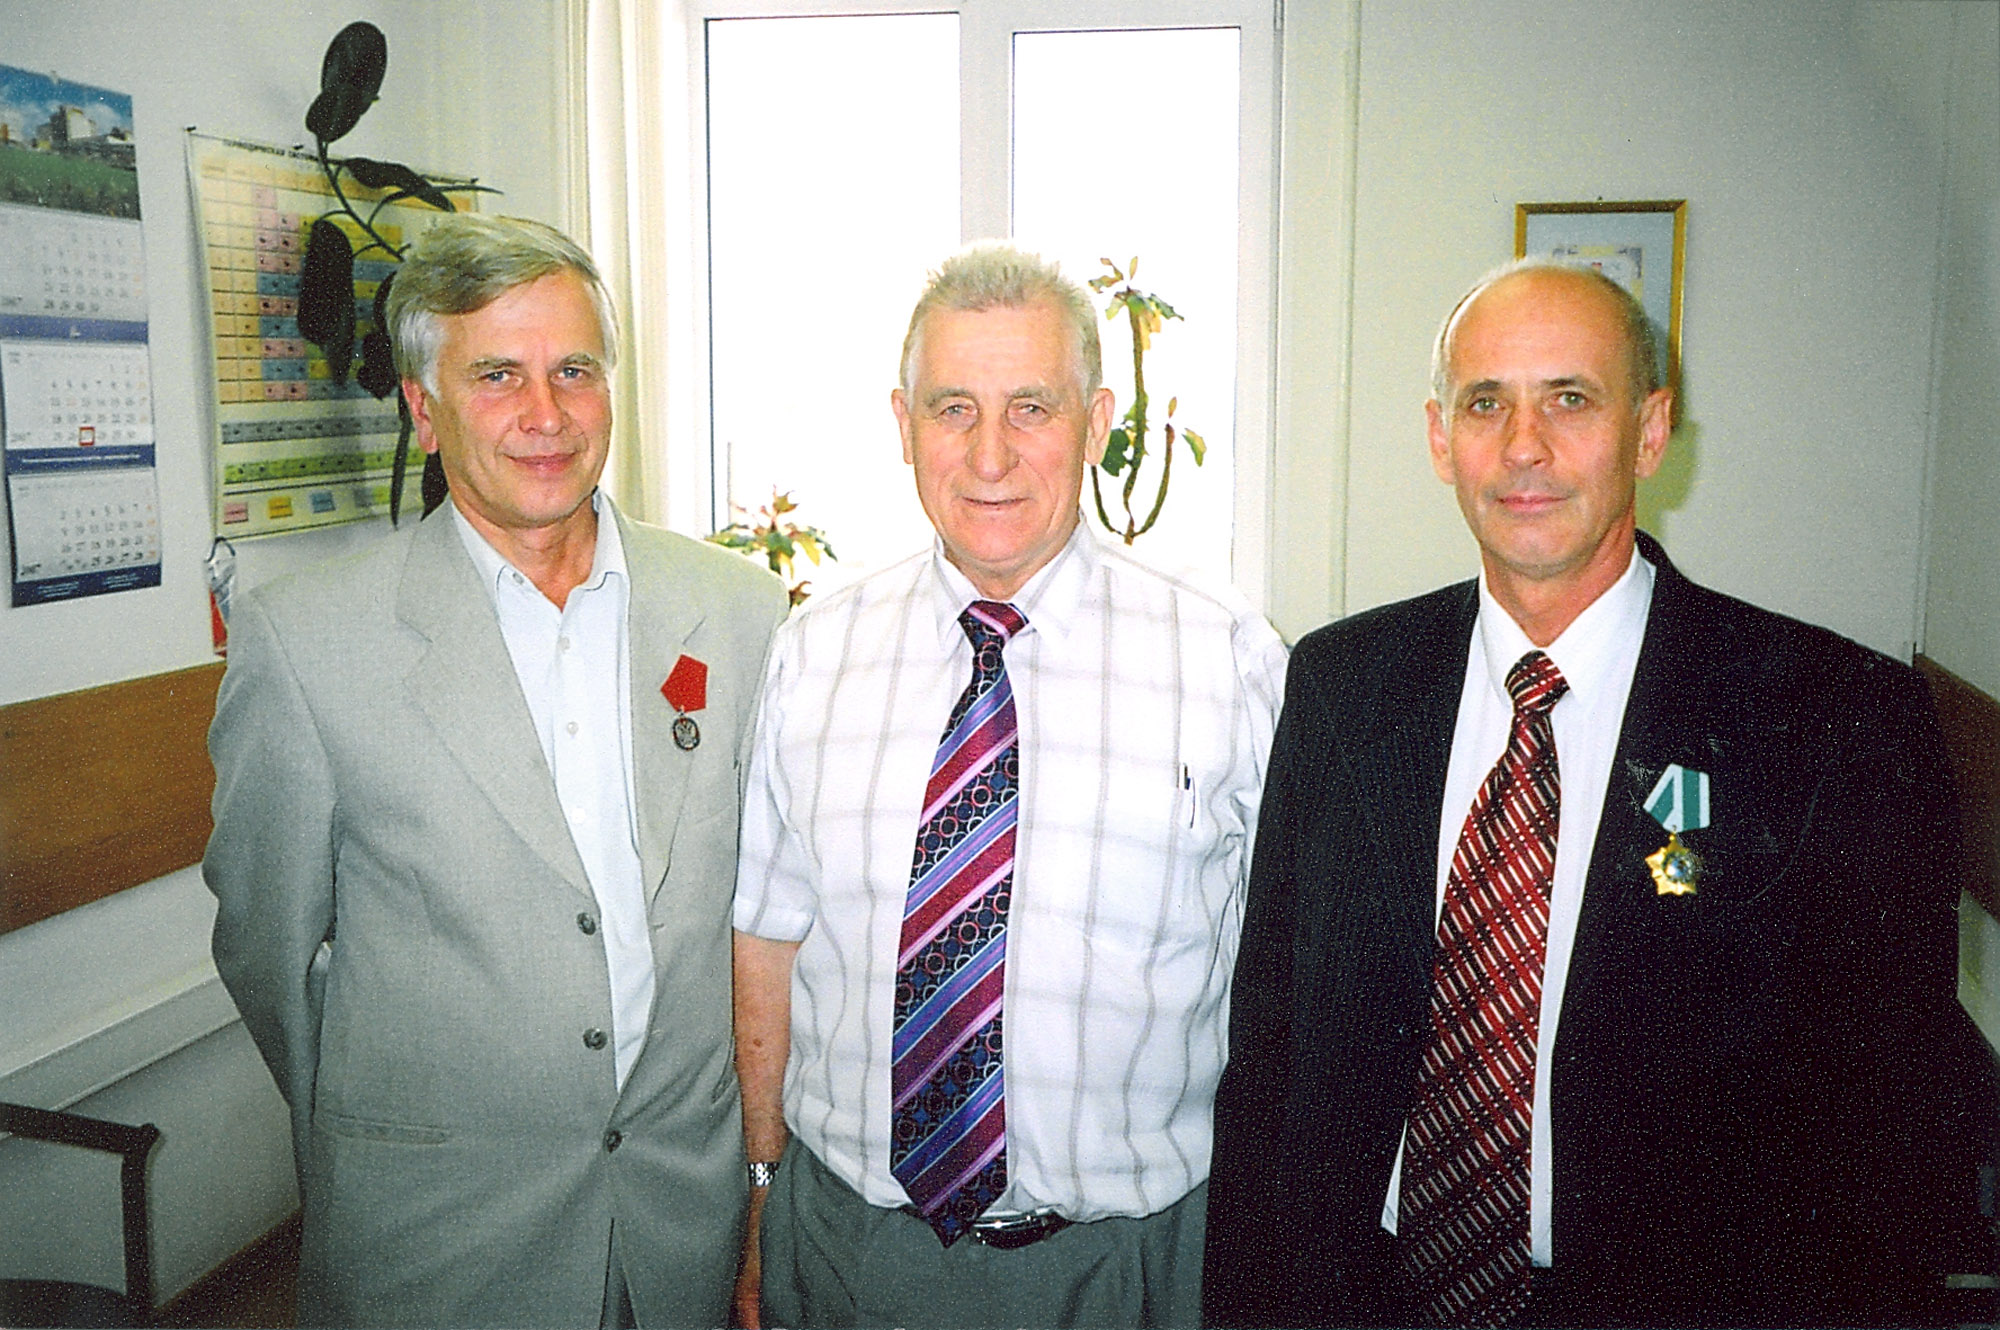 Valery Smirnov, Activities Manager from Sosny R&D Company, (on the extreme right) awarded with the Order of Friendship